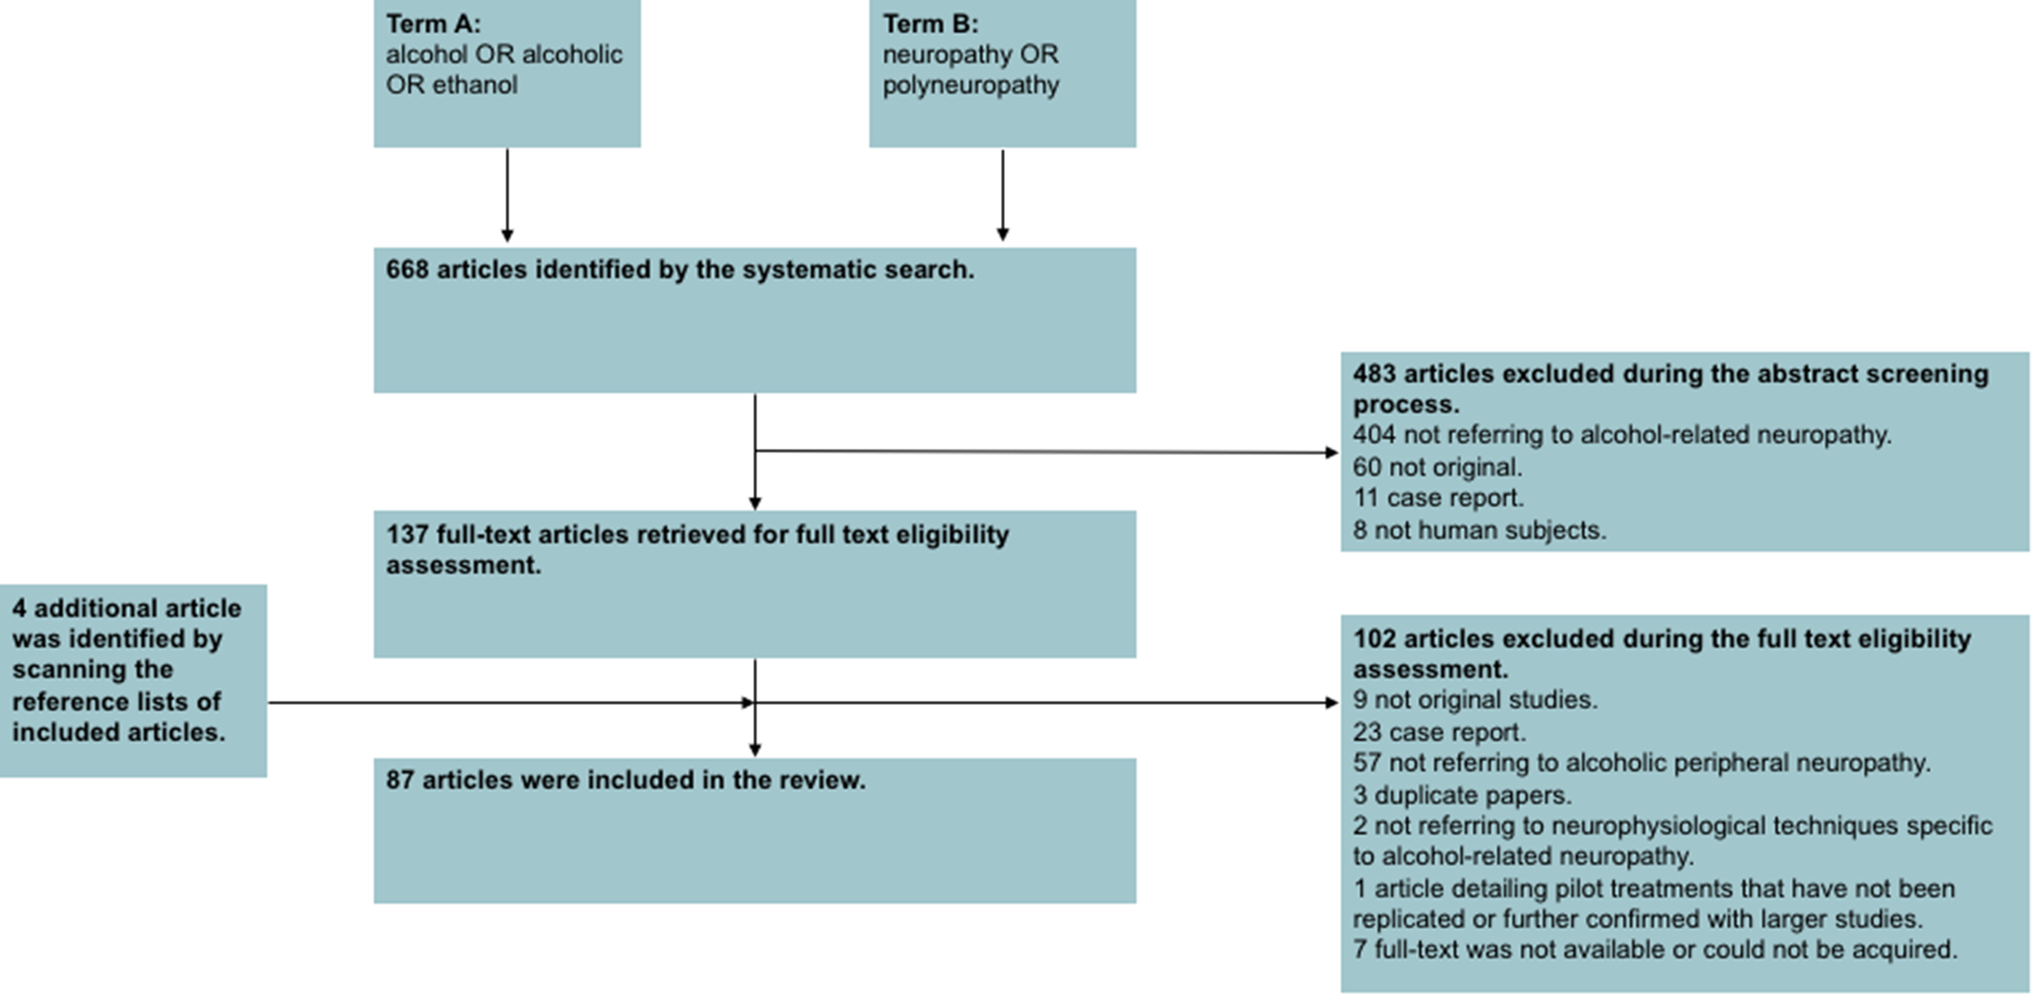 c5513a23fe Alcohol-related peripheral neuropathy: a systematic review and meta ...